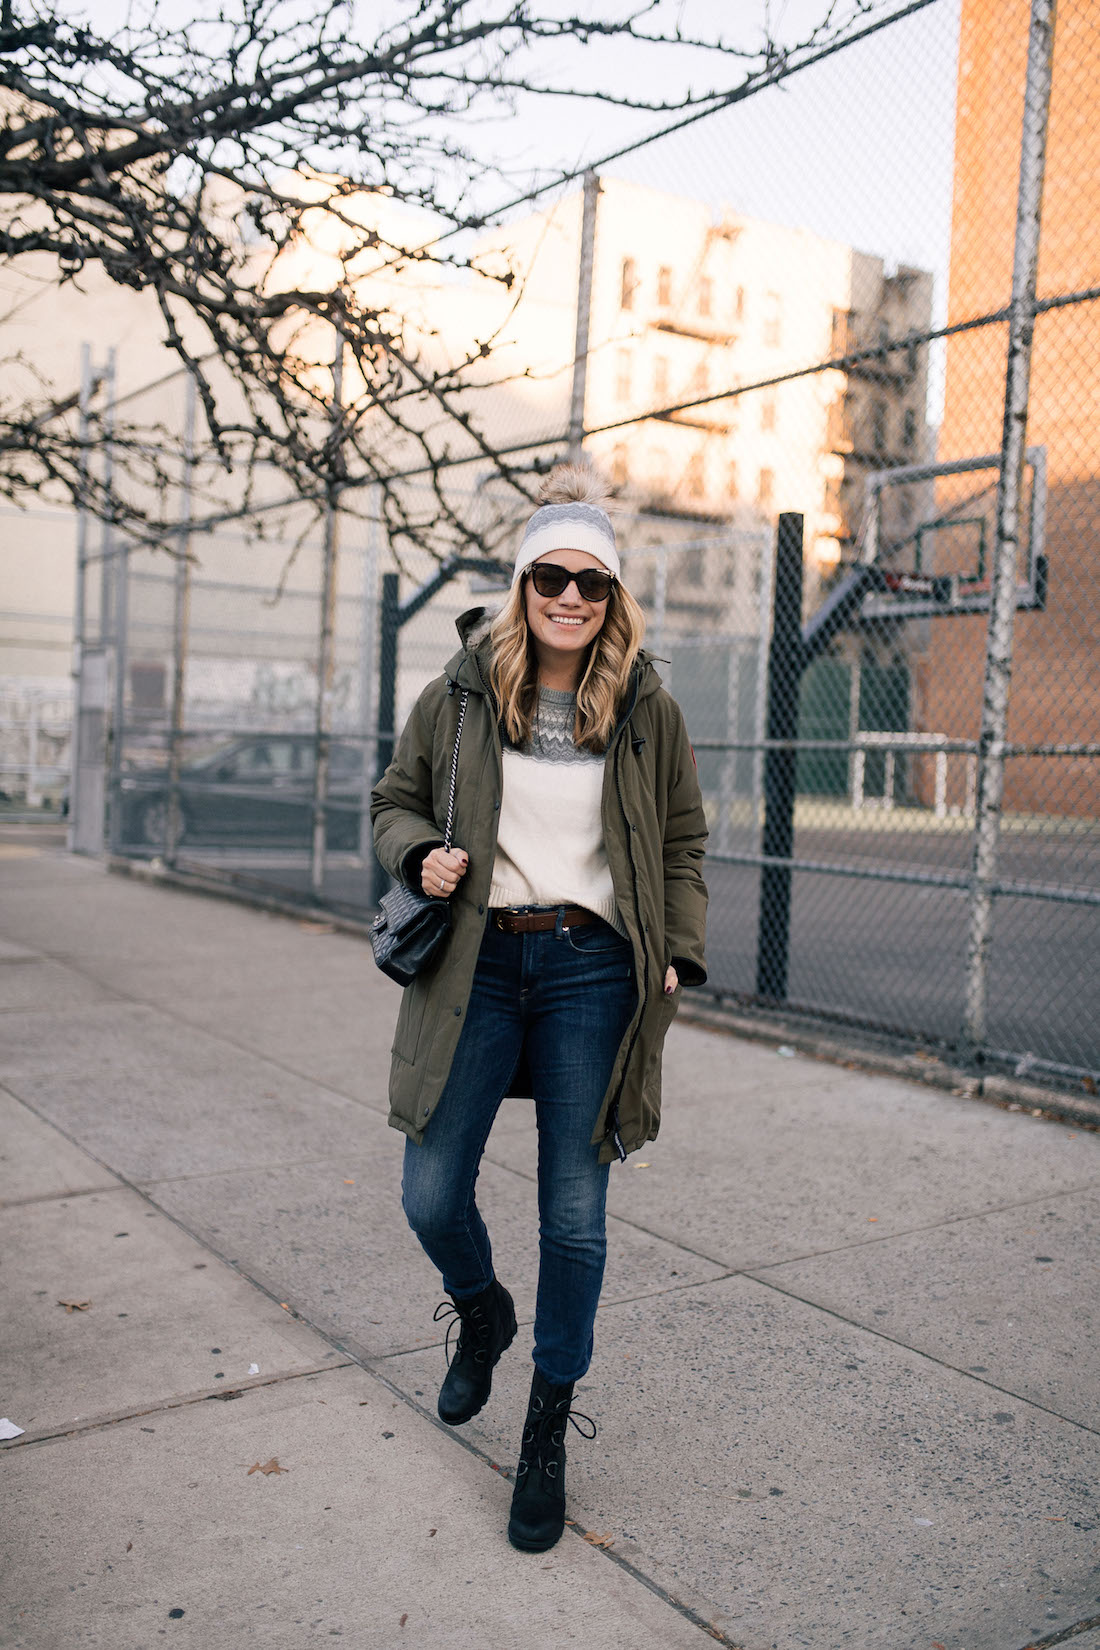 Outfit Details:Canada Goose Parka // Vineyard Vines Sweater + Hat (c/o) // Good American Jeans // Sorel Boots // Chanel Purse // Polaroid Sunglasses